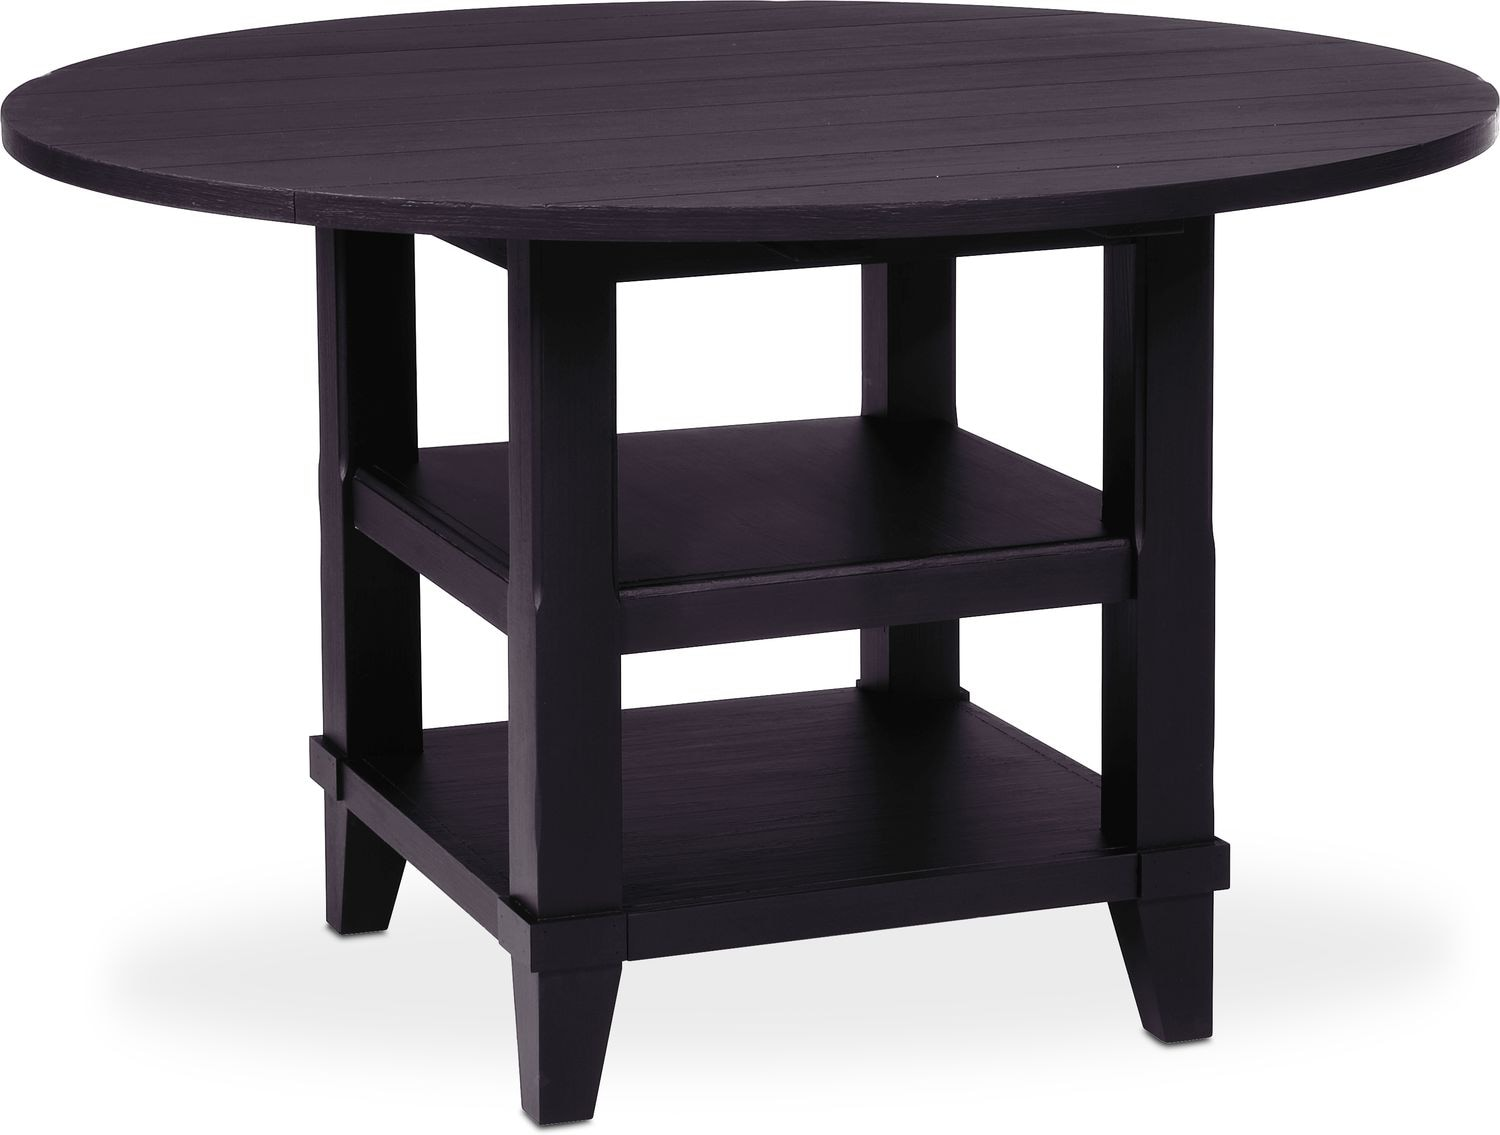 New Haven Round Drop Leaf Dining Table Black Value City